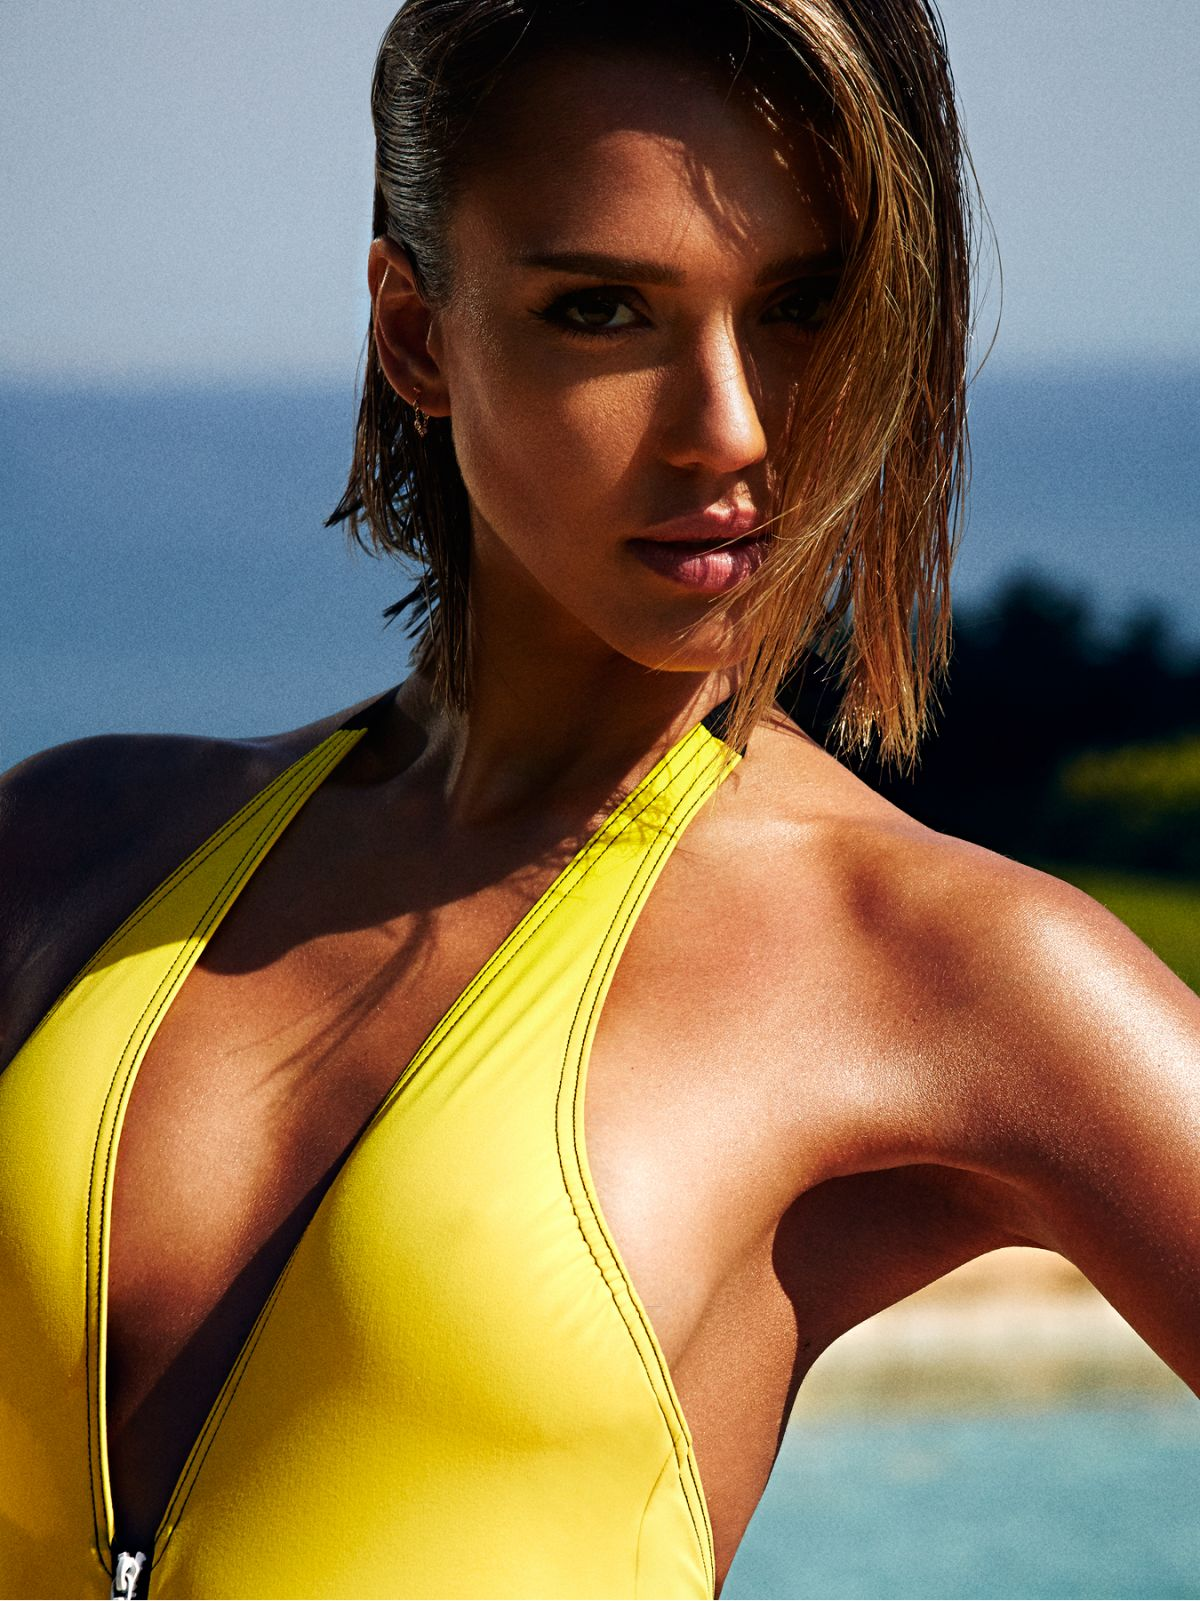 Jessica Alba Biography - Facts, Childhood, Family Life